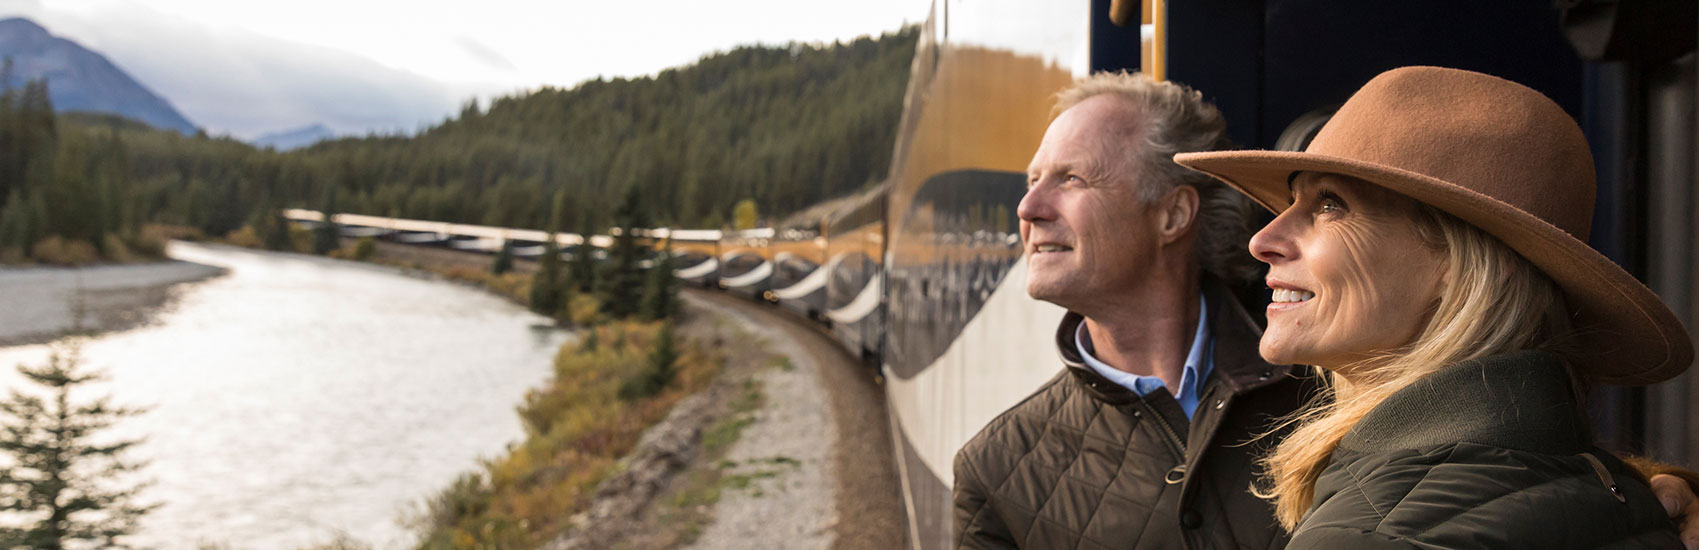 Mountain Bound in 2021 with Rocky Mountaineer 5